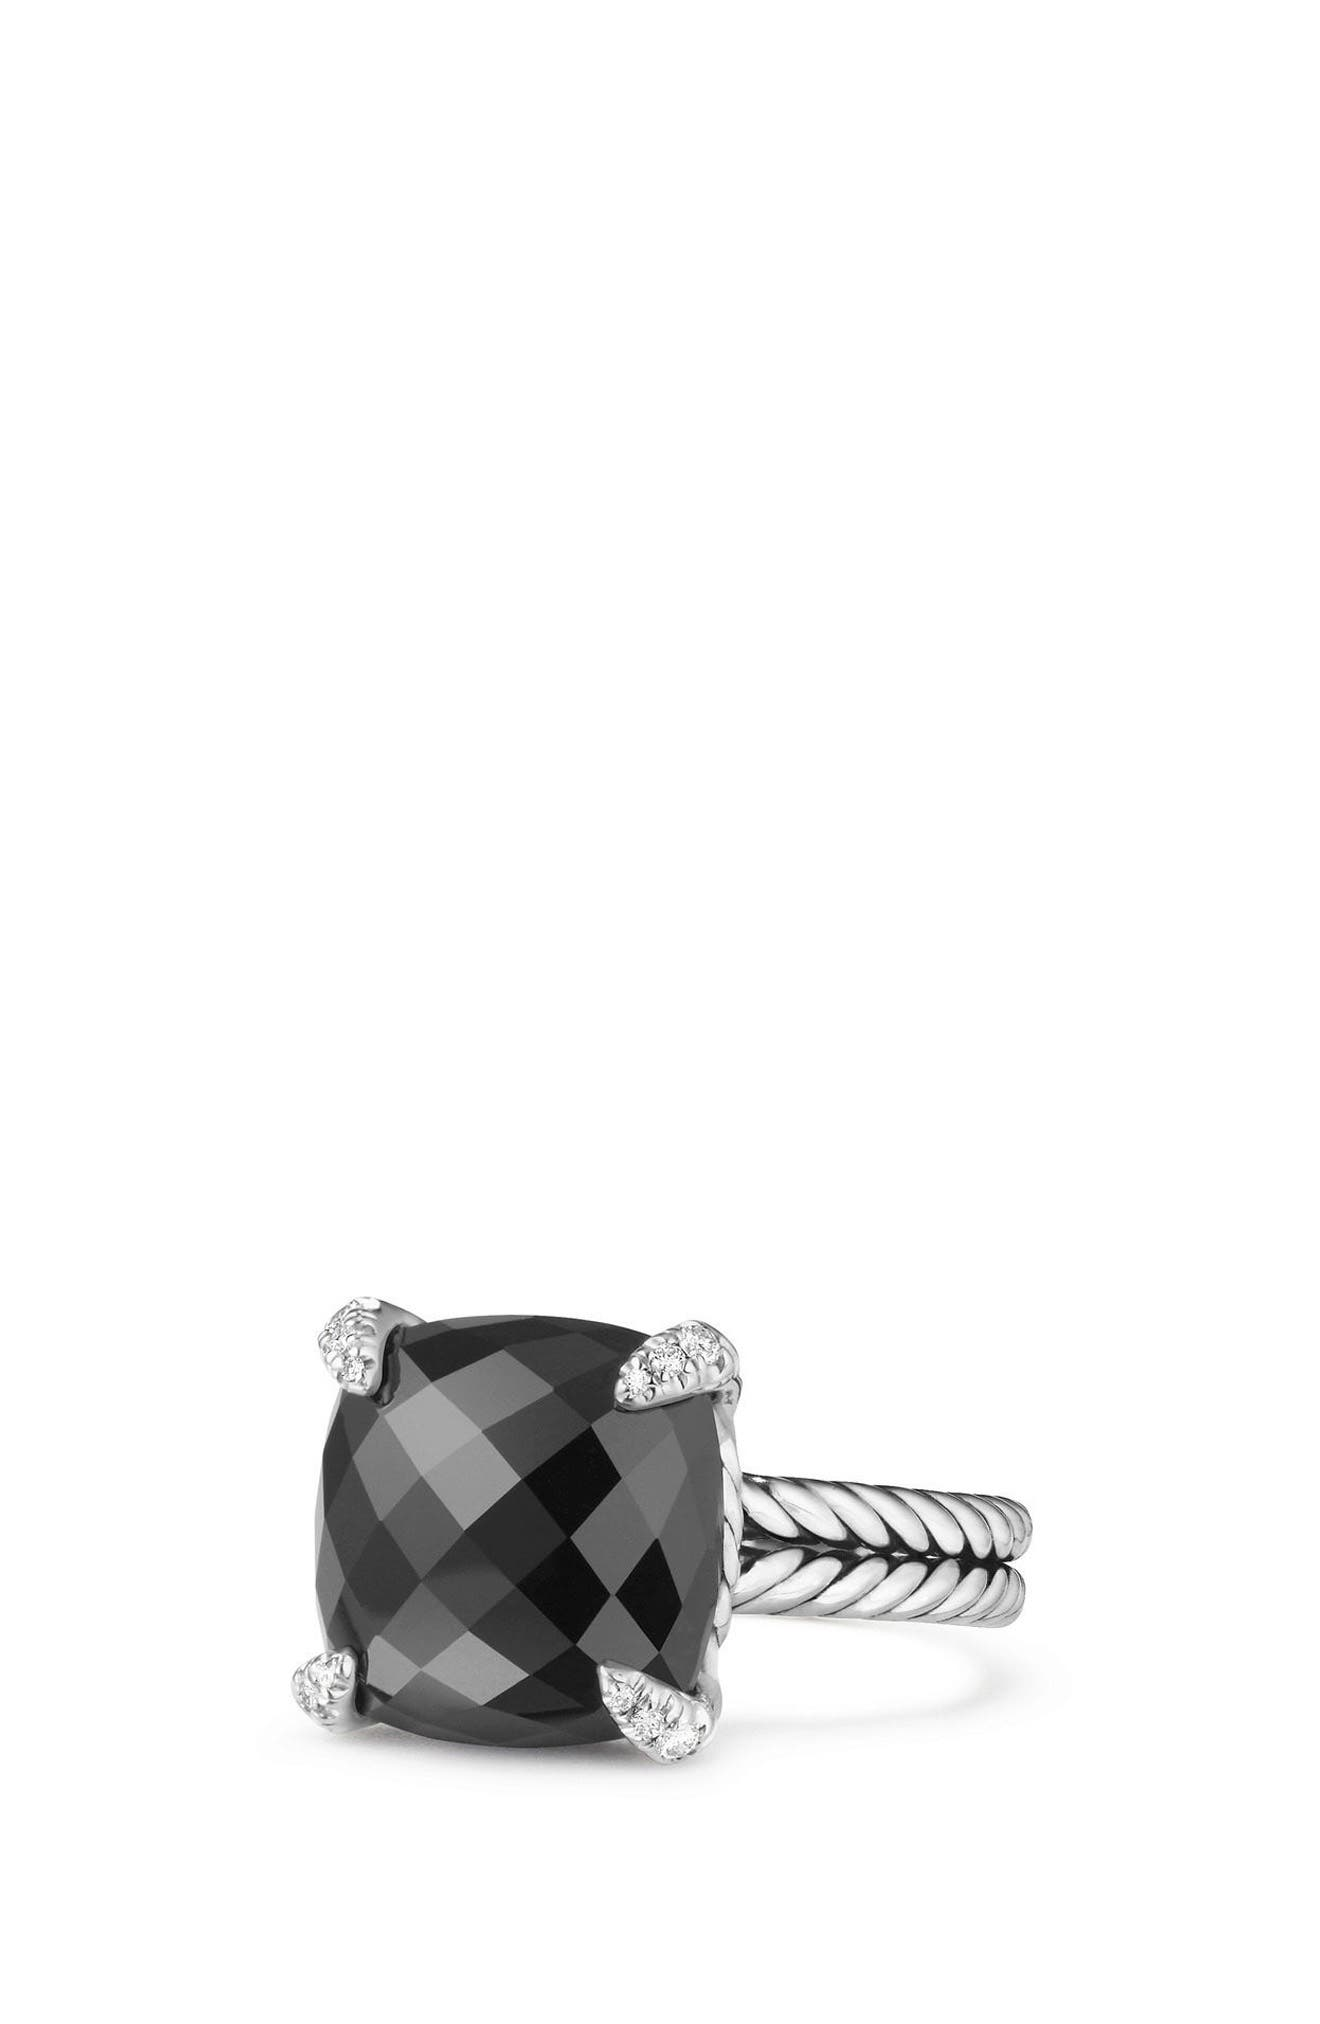 Châtelaine Ring with Semiprecious Stone & Diamonds,                             Main thumbnail 1, color,                             BLACK ONYX